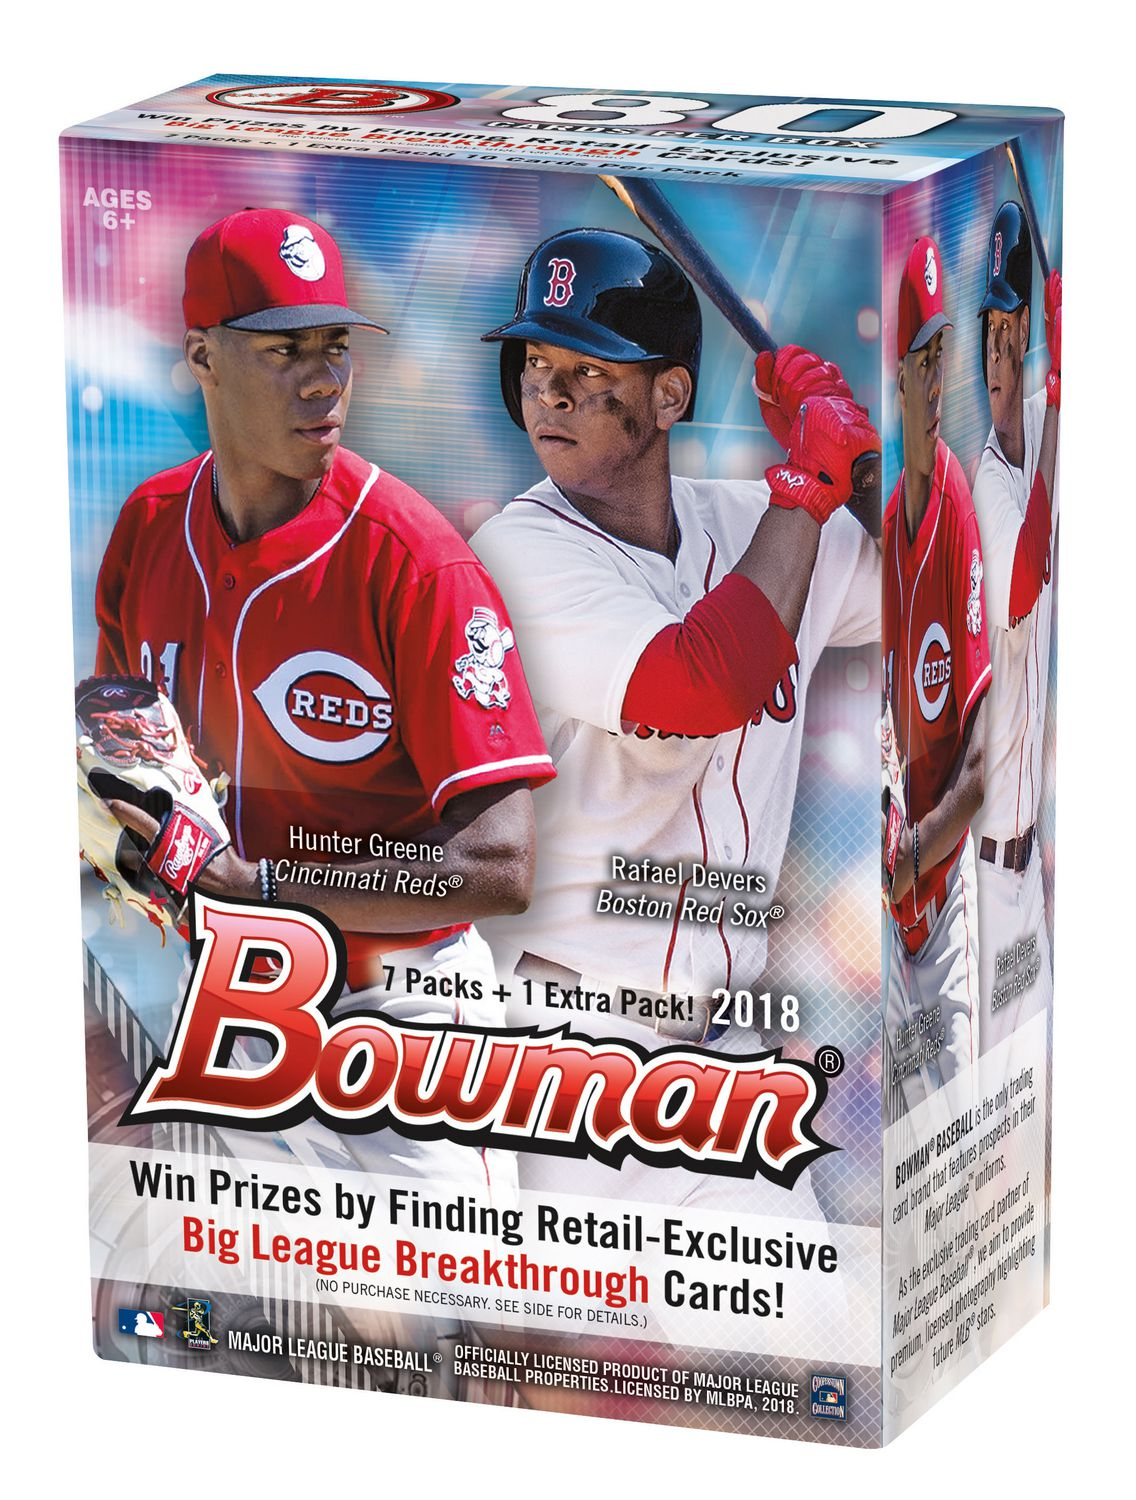 2018 Topps Bowman Mlb Baseball Value Box Trading Cards